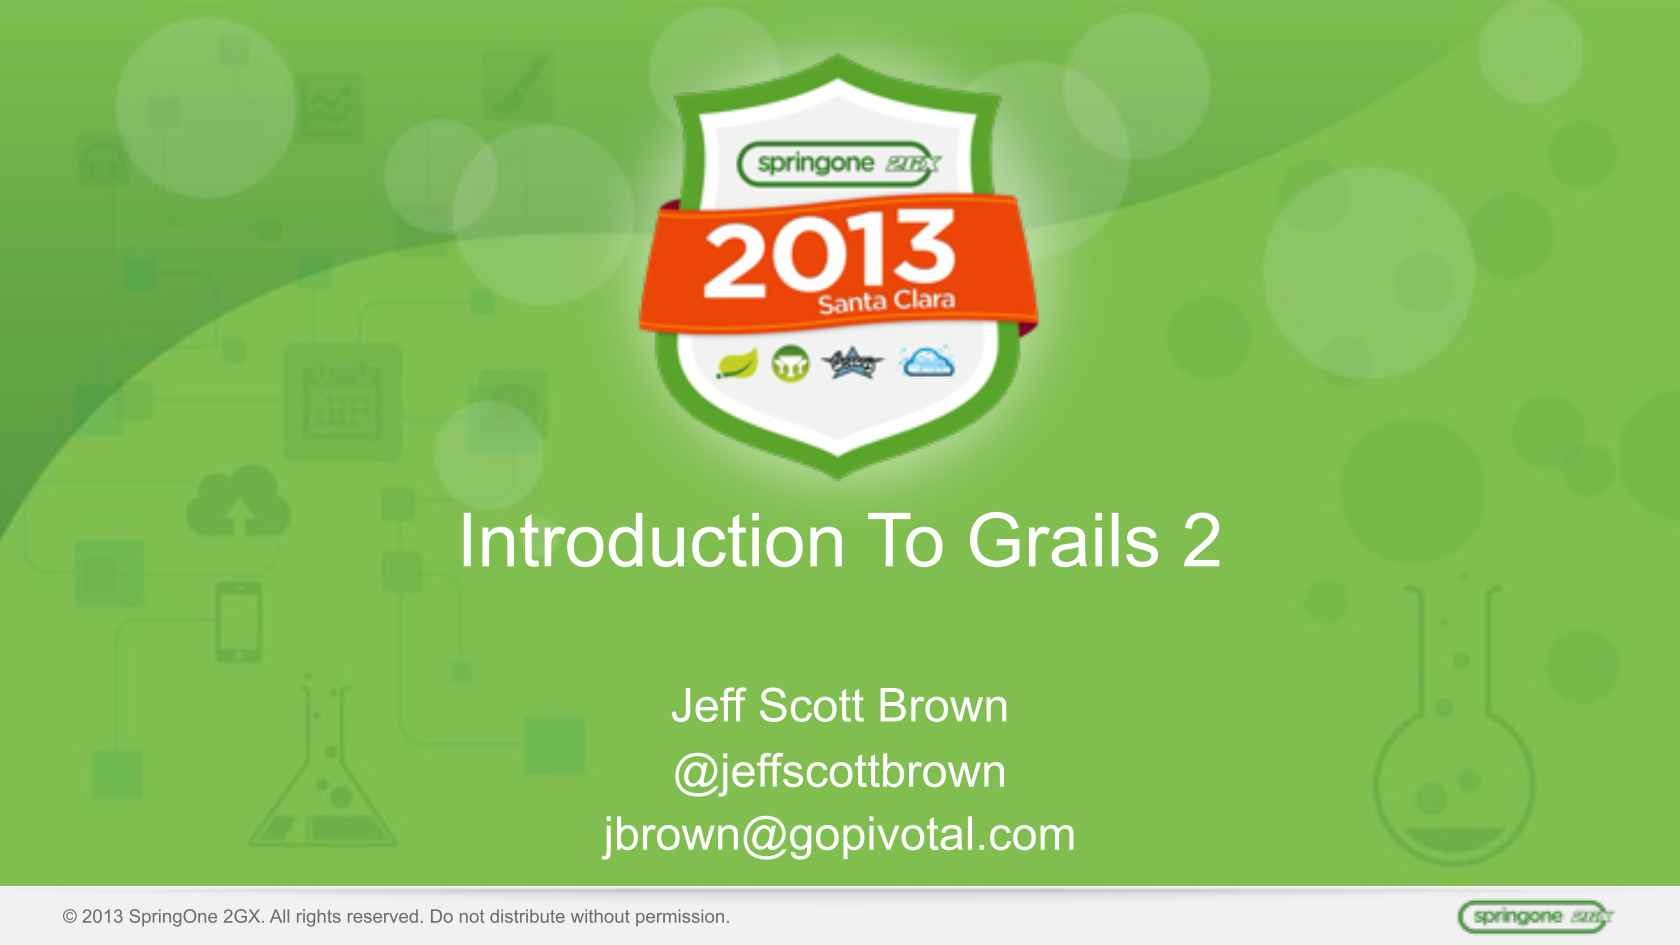 An Introduction To Web Development With Grails 2